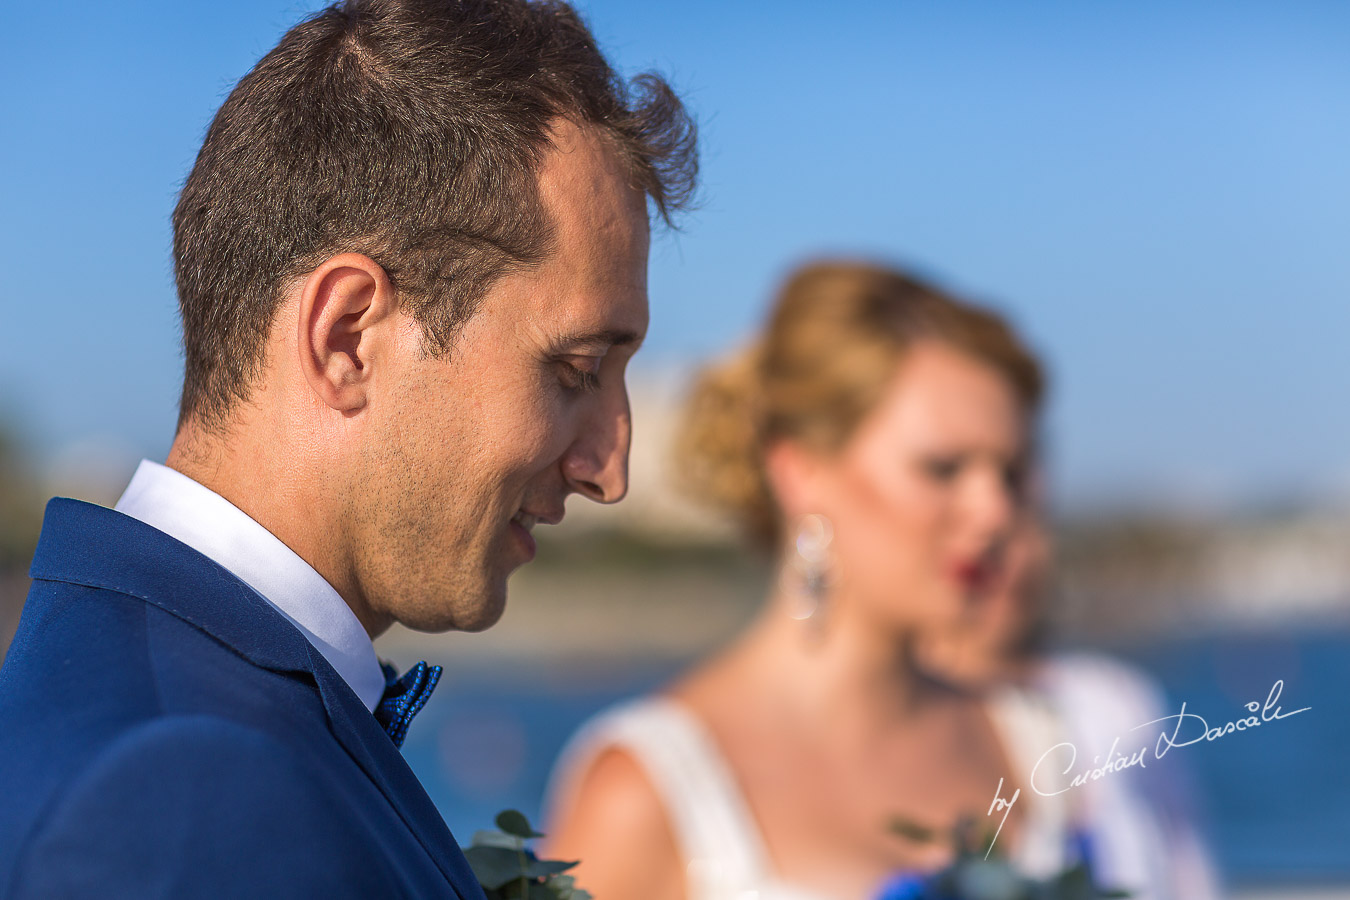 Emotional Wedding moment captured at Elias Beach Hotel in Limassol by Cristian Dascalu